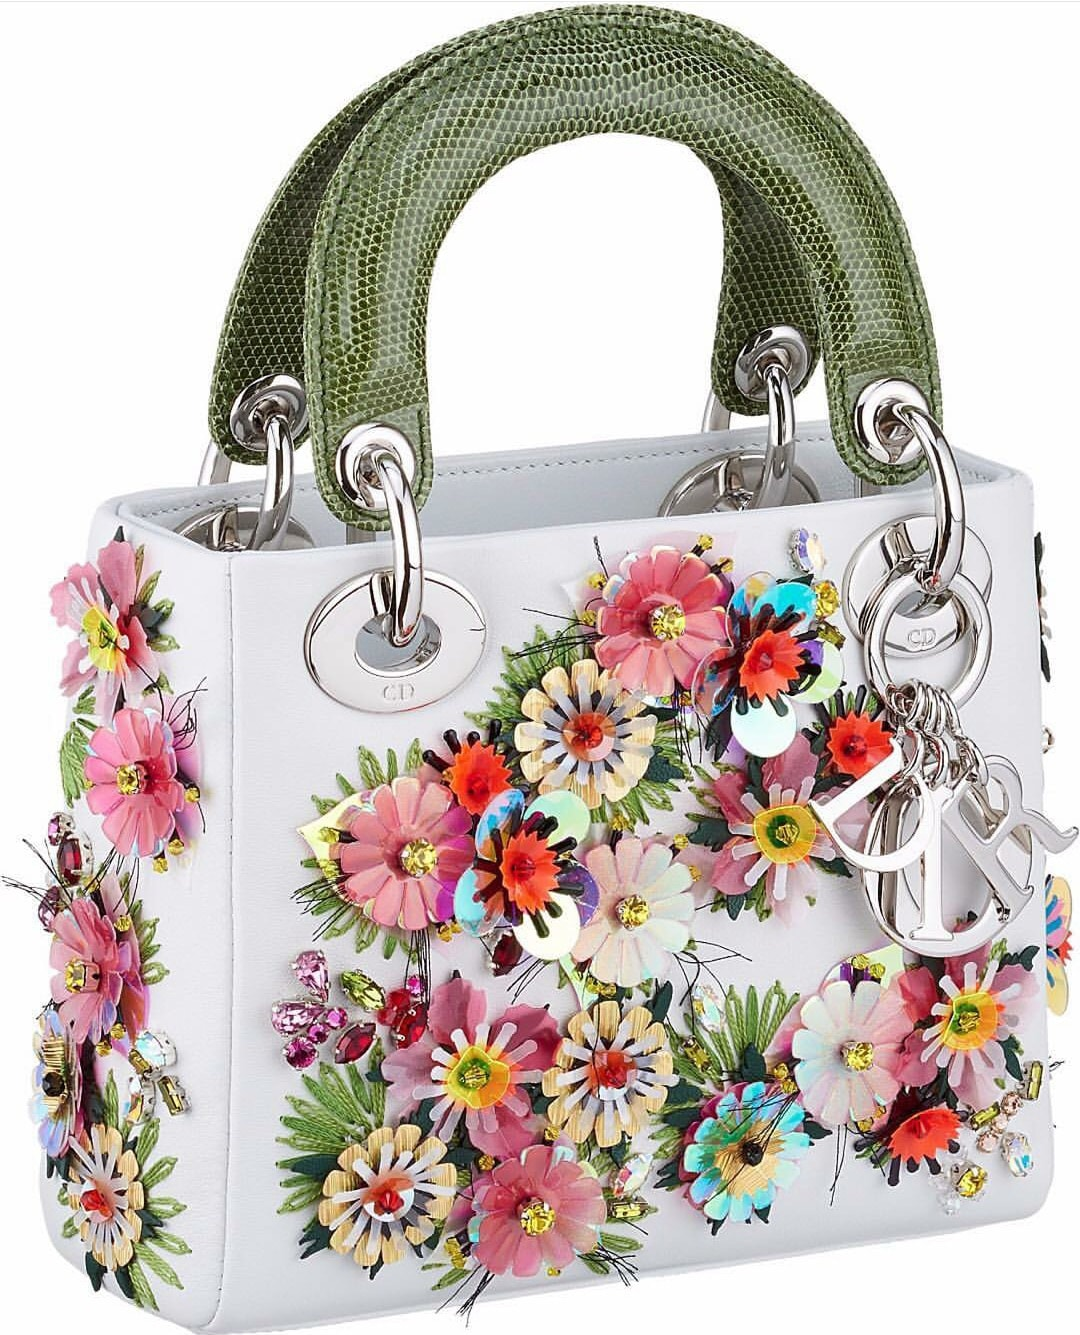 Dior Spring/Summer 2016 Bag Collection | Page 2 of 2 ...